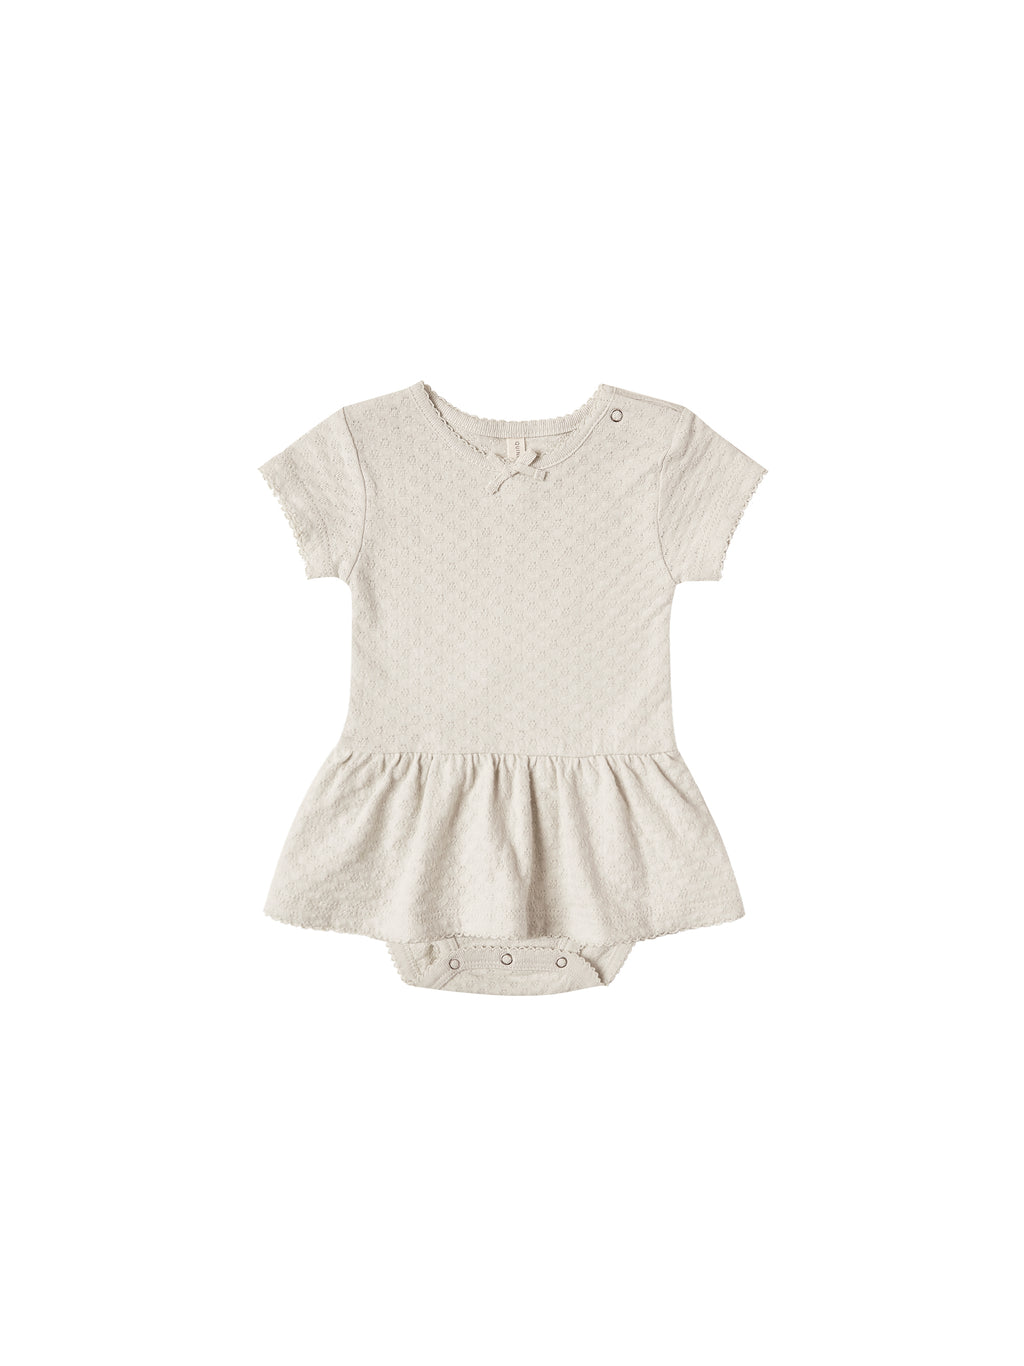 Quincy Mae Pointelle Skirted Onesie - Natural